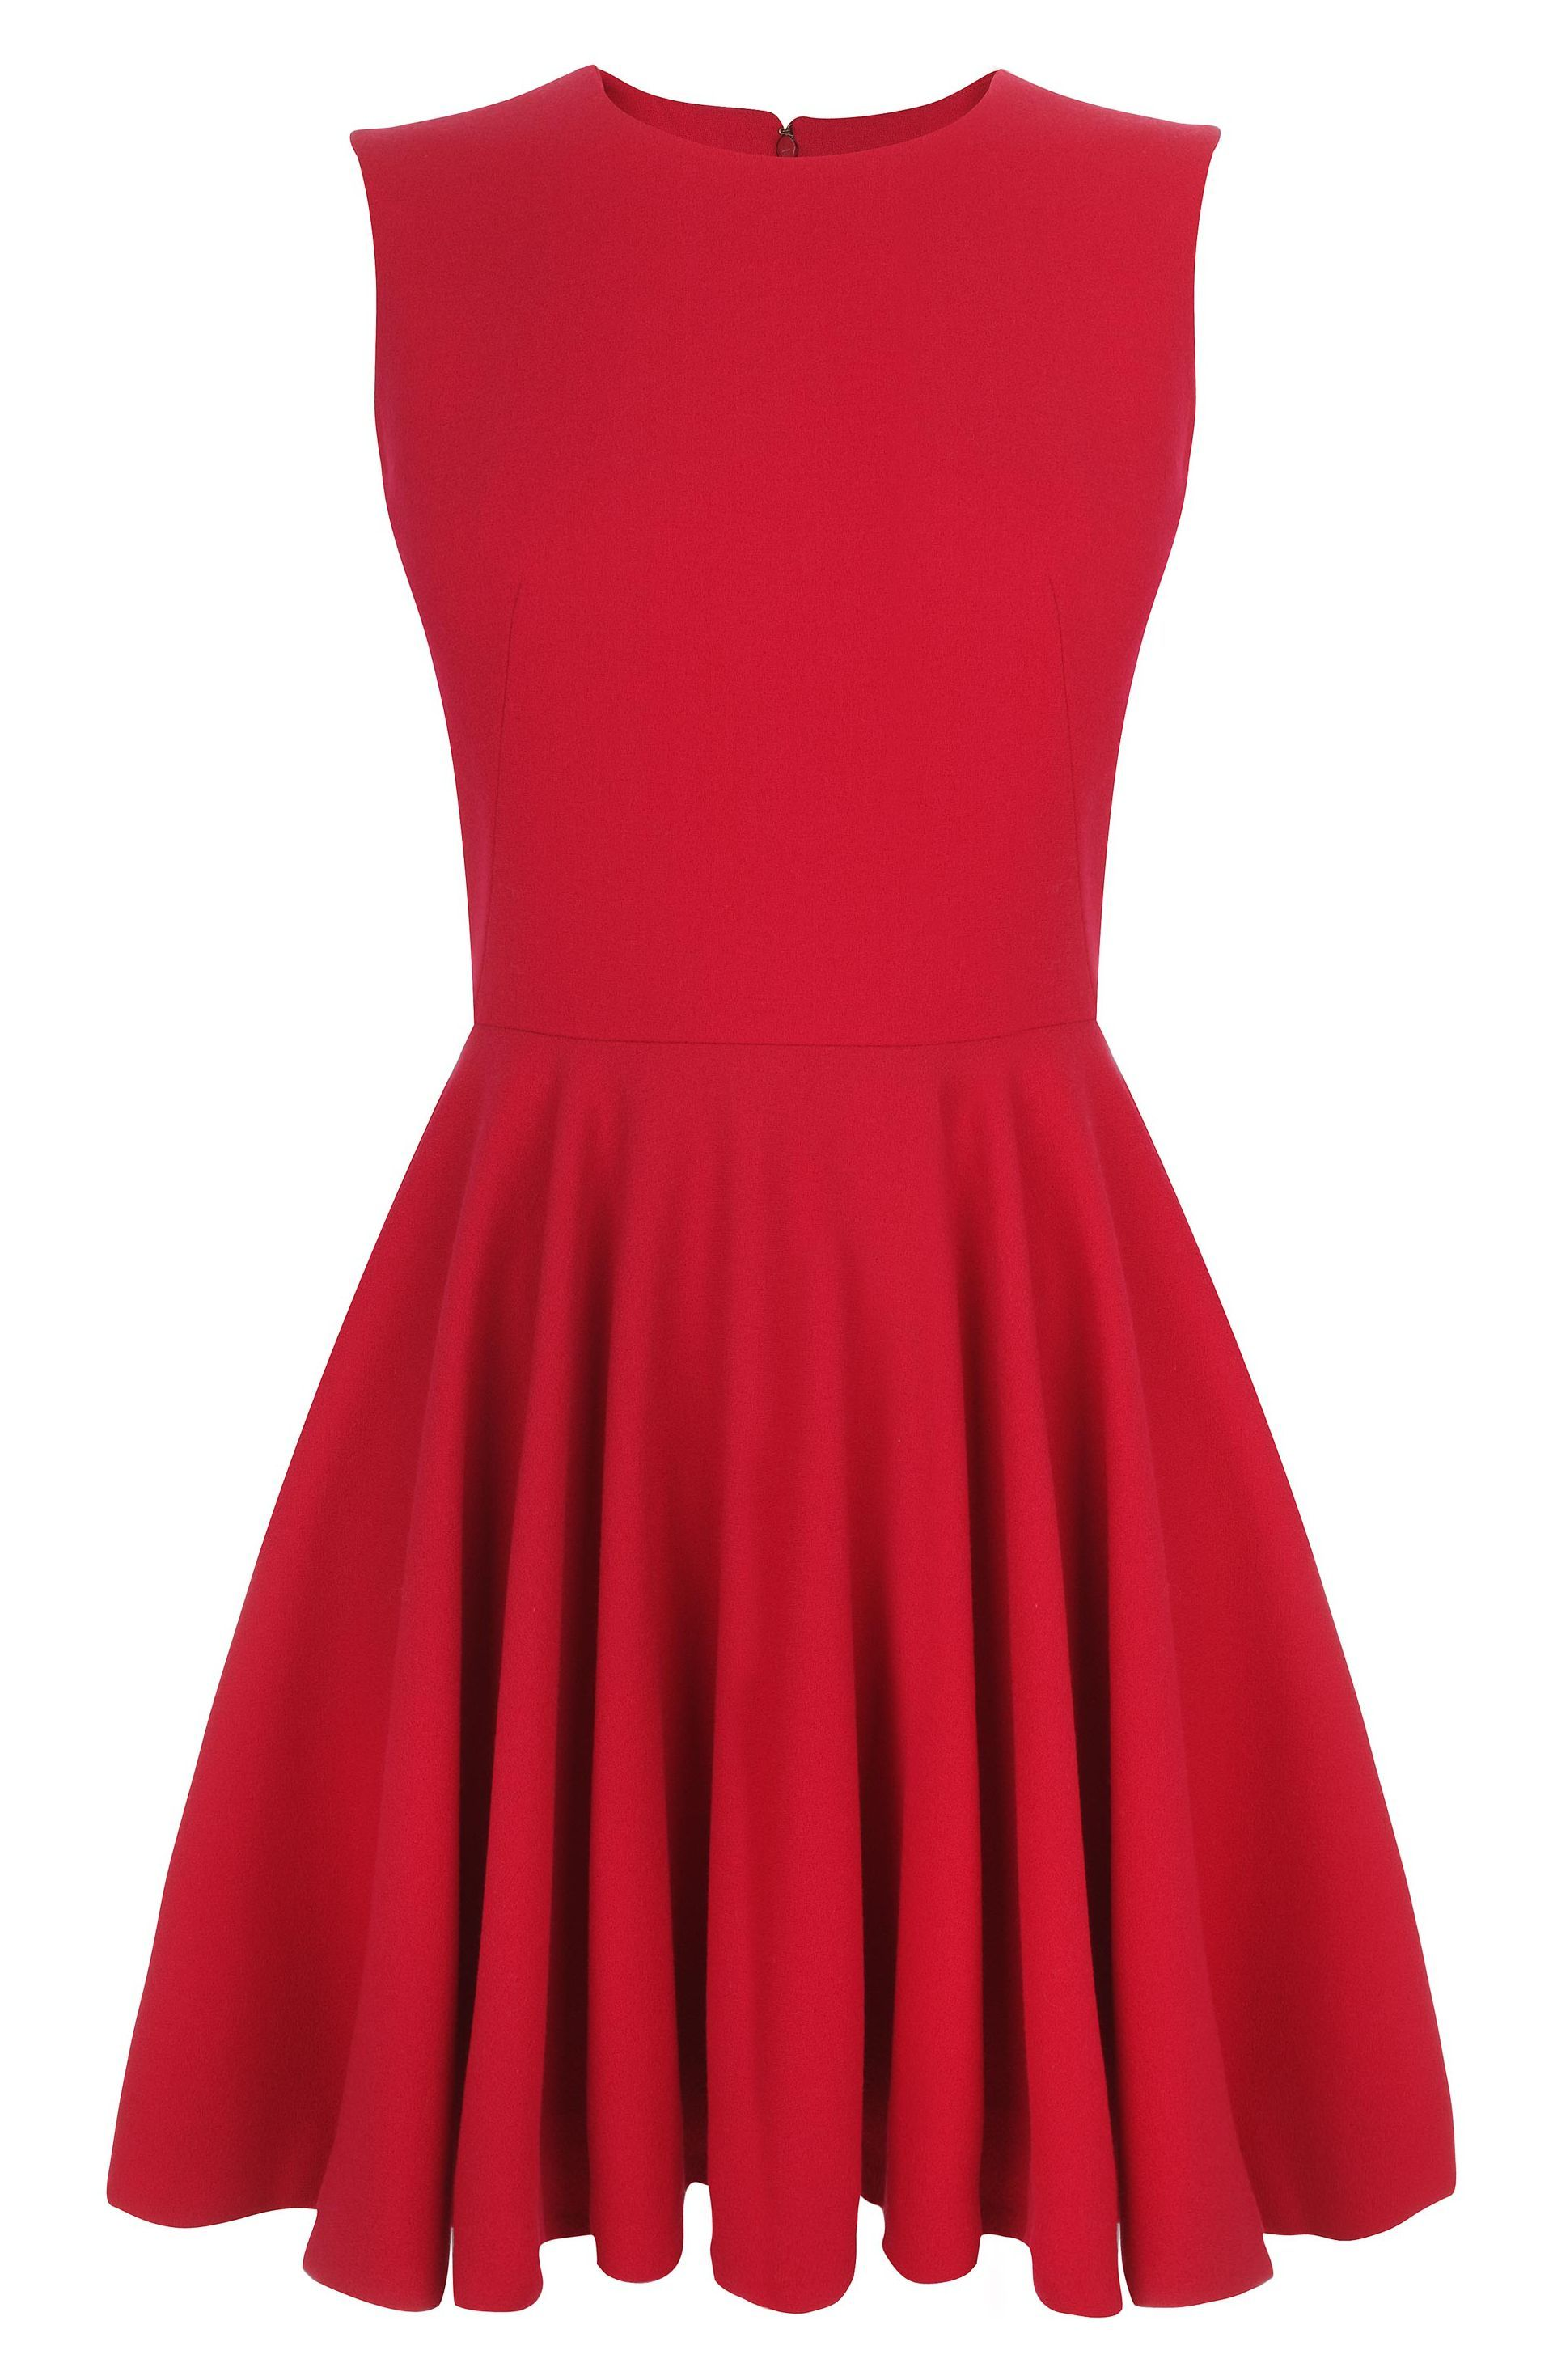 Alexander mcqueen cherry crepe wool circle minidress a few of my